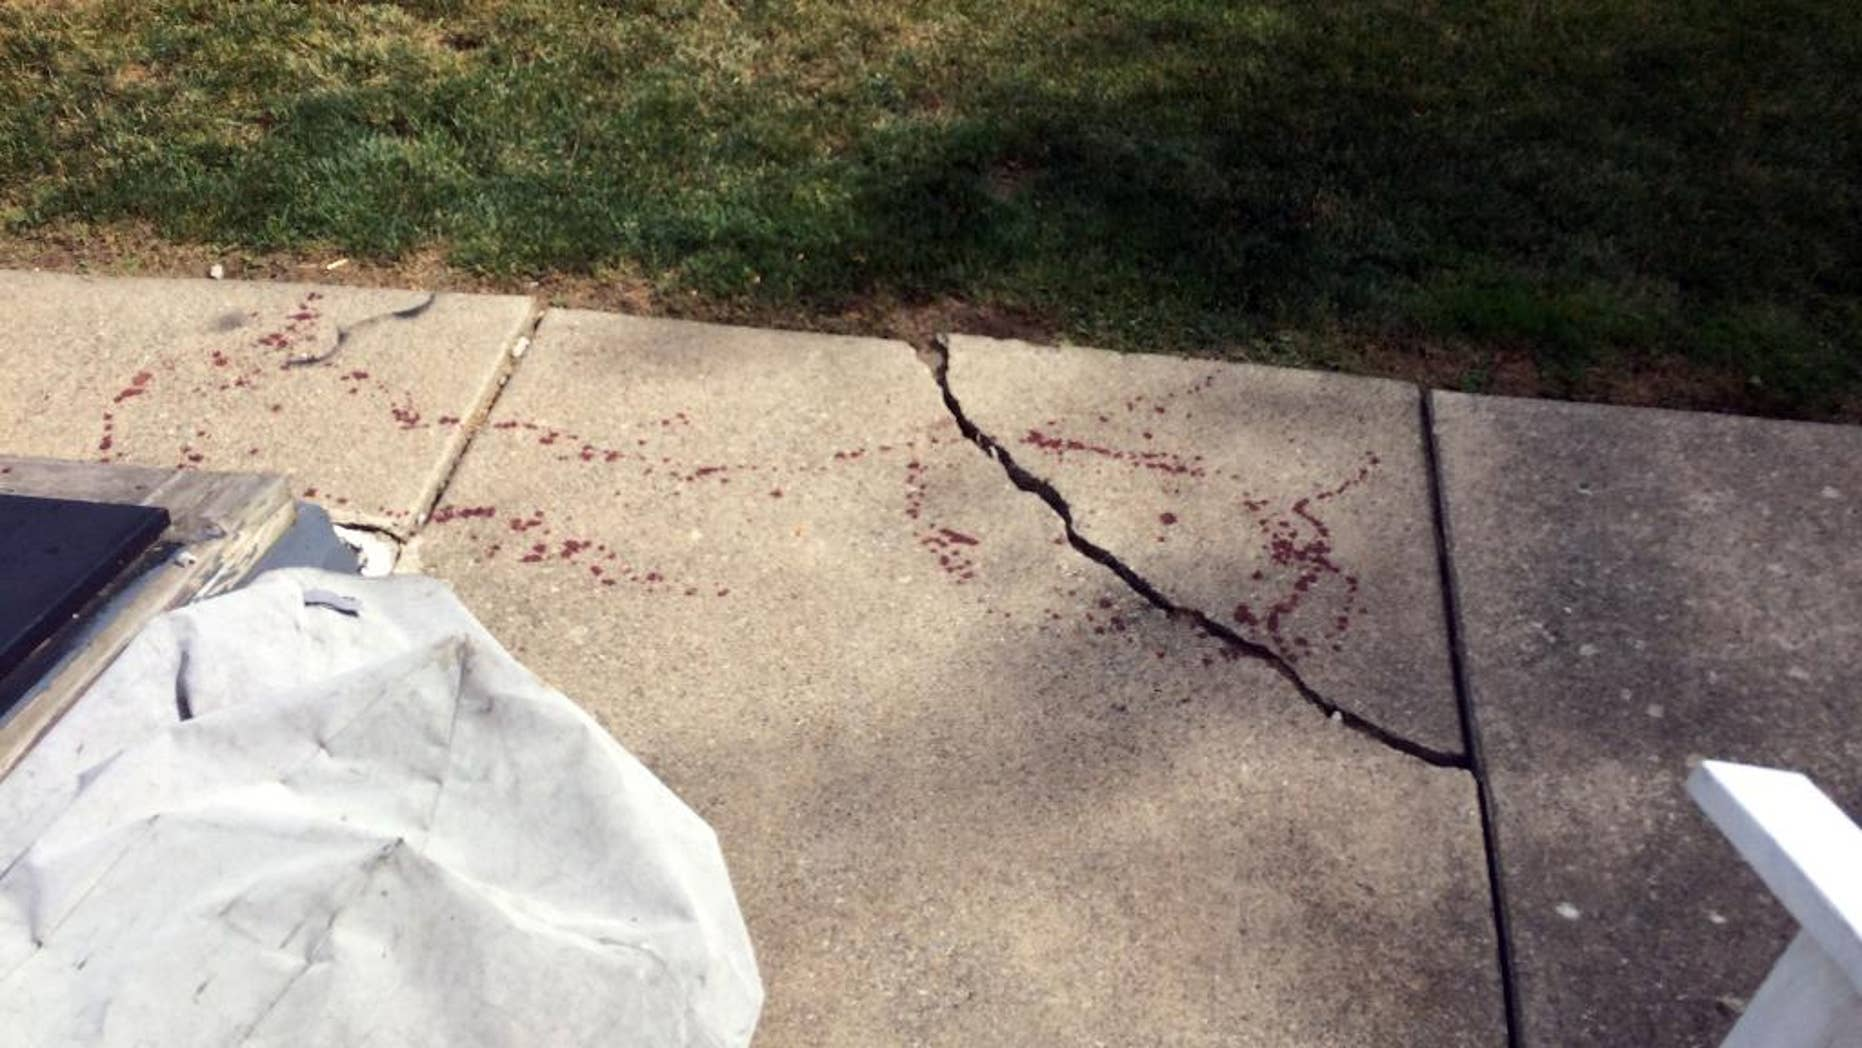 In this Sunday, July 3, 2016 photo, drops of blood are seen near a basement door, left, in Northampton, Pa. Officials in eastern Pennsylvania said a man who said he was attacked by masked men during a home invasion cut off the hand of one of them with a machete. (Pamela Lehman/The Morning Call via AP)